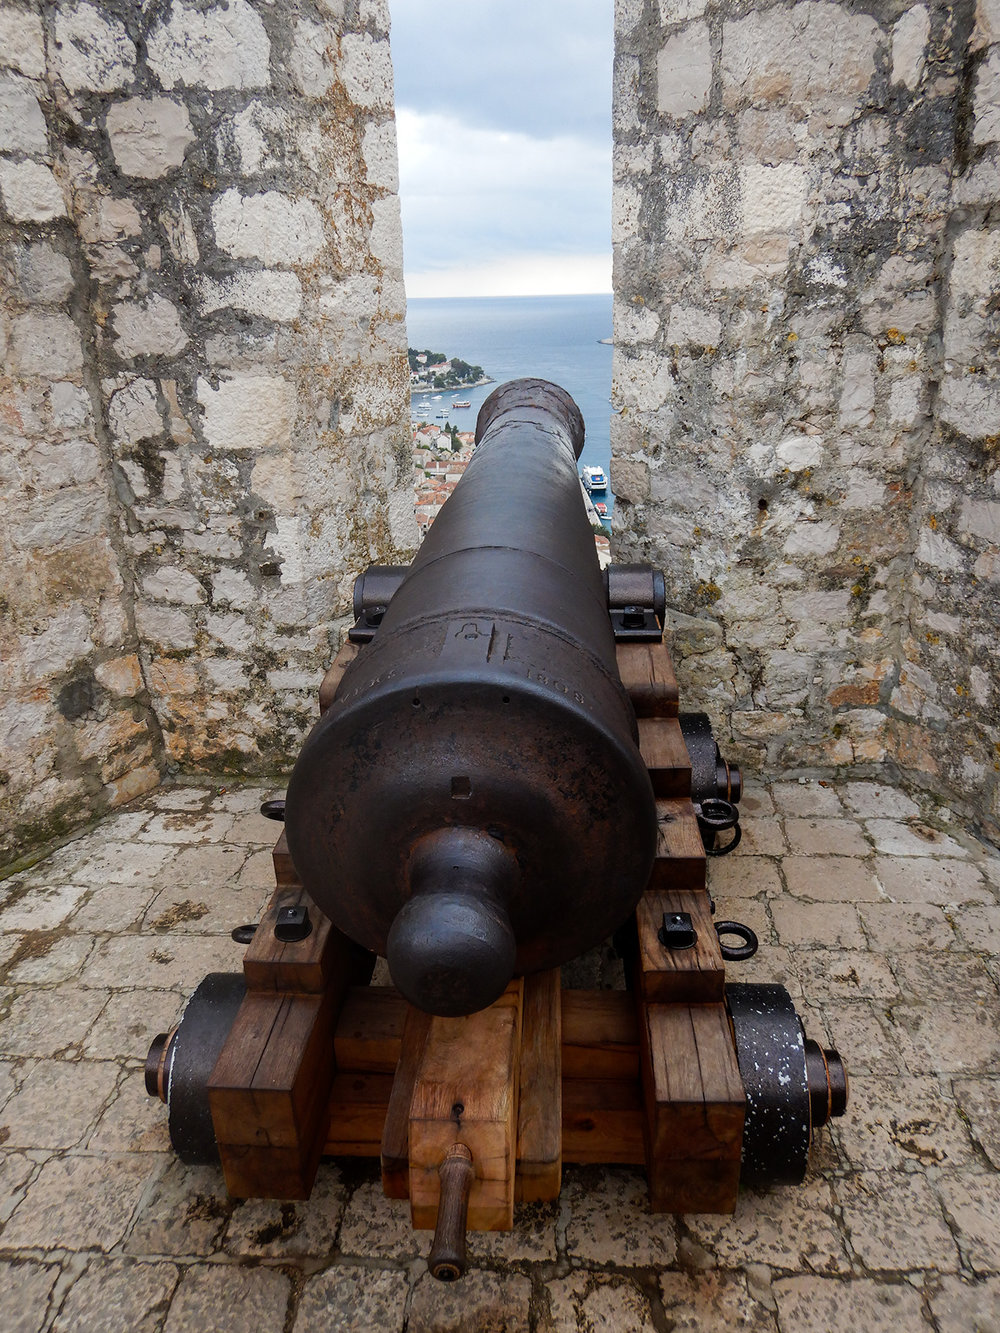 A cannon at the fort, and the chapel up at the fort and views of the town below (click on any image below to expand)